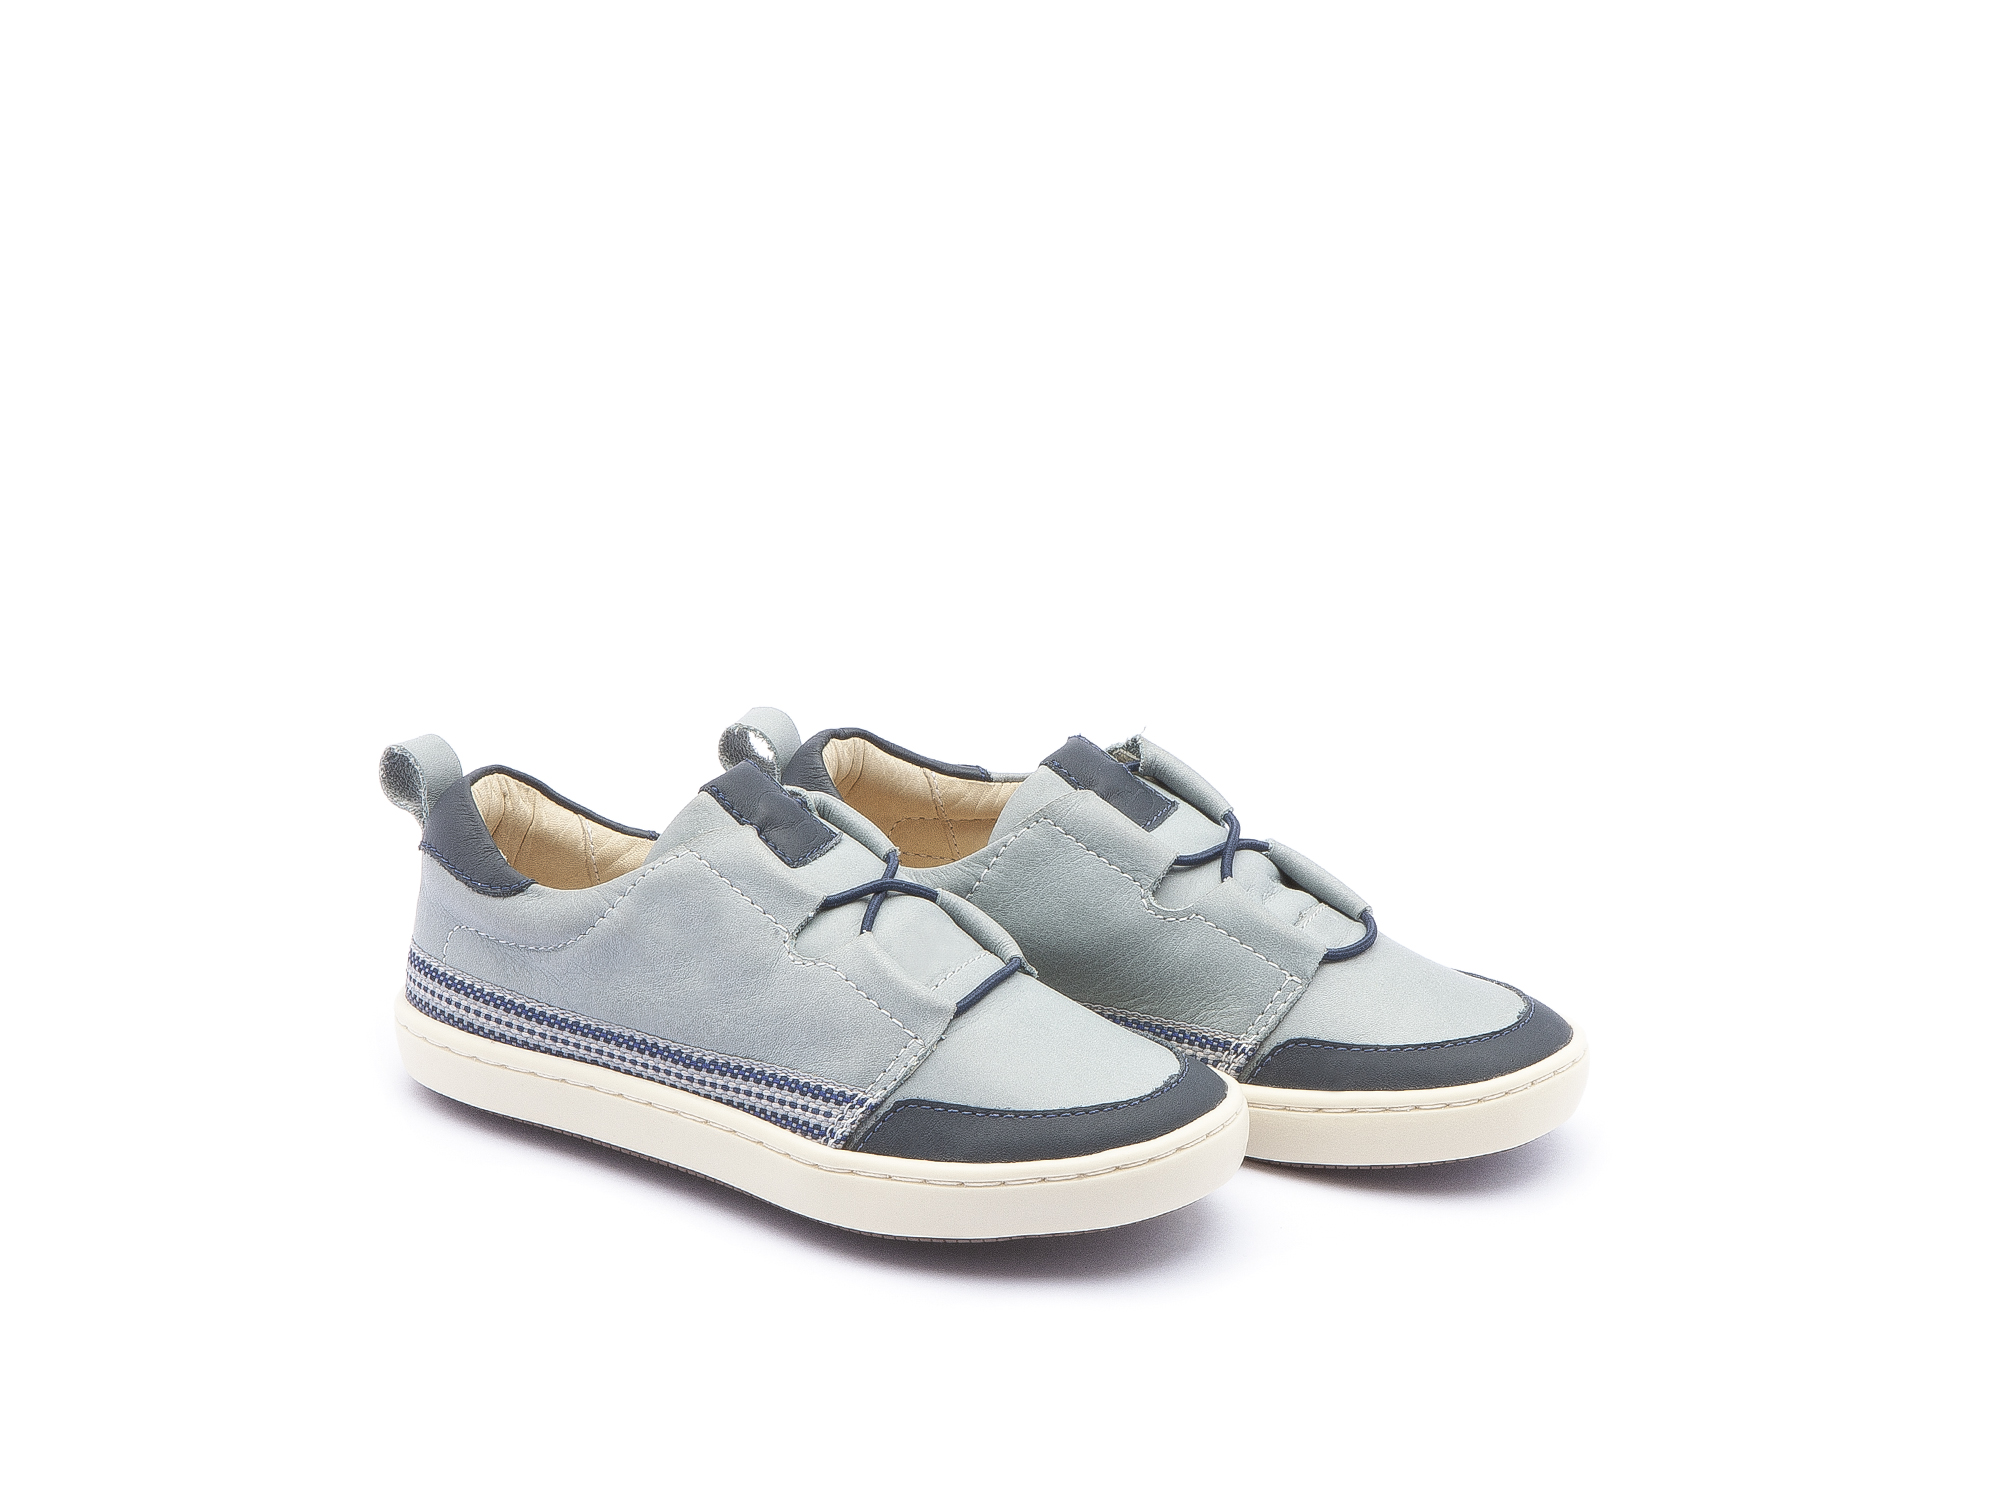 Sneaker Casual Little Ancestral Slate Blue Toddler 2 à 4 anos - 0